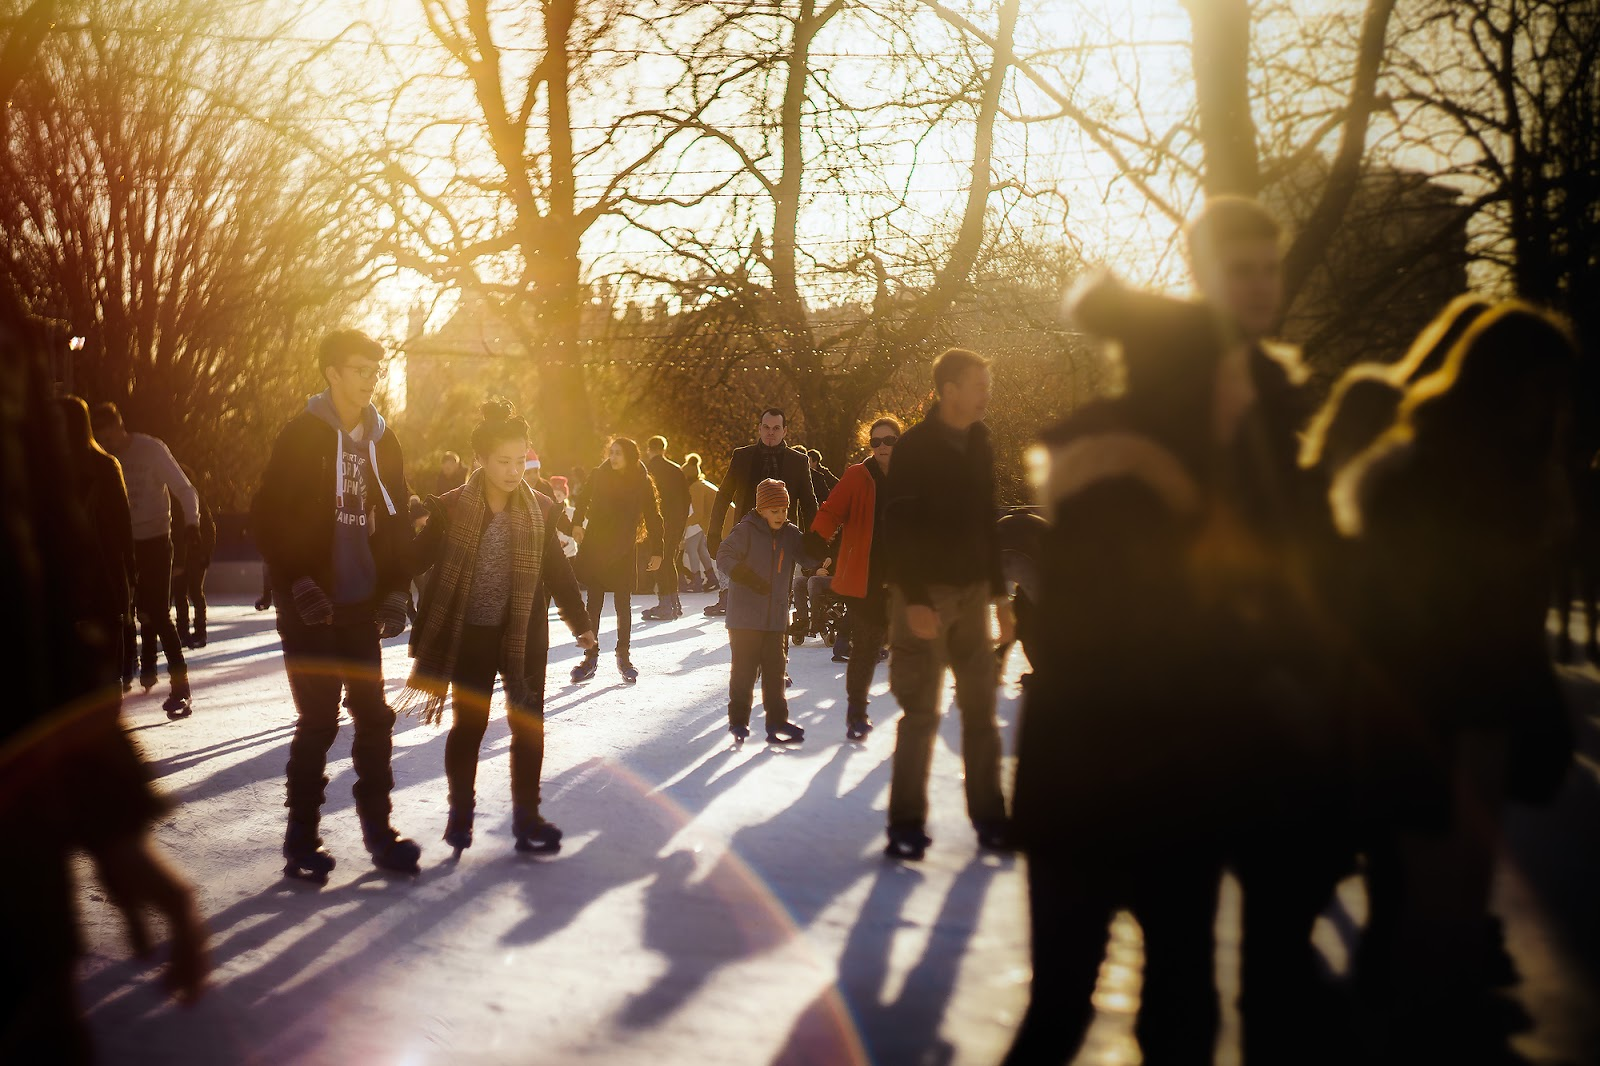 Image of winter wonderland at hyde park captured with Helios 44 Sony A7II in London by Willie Kers